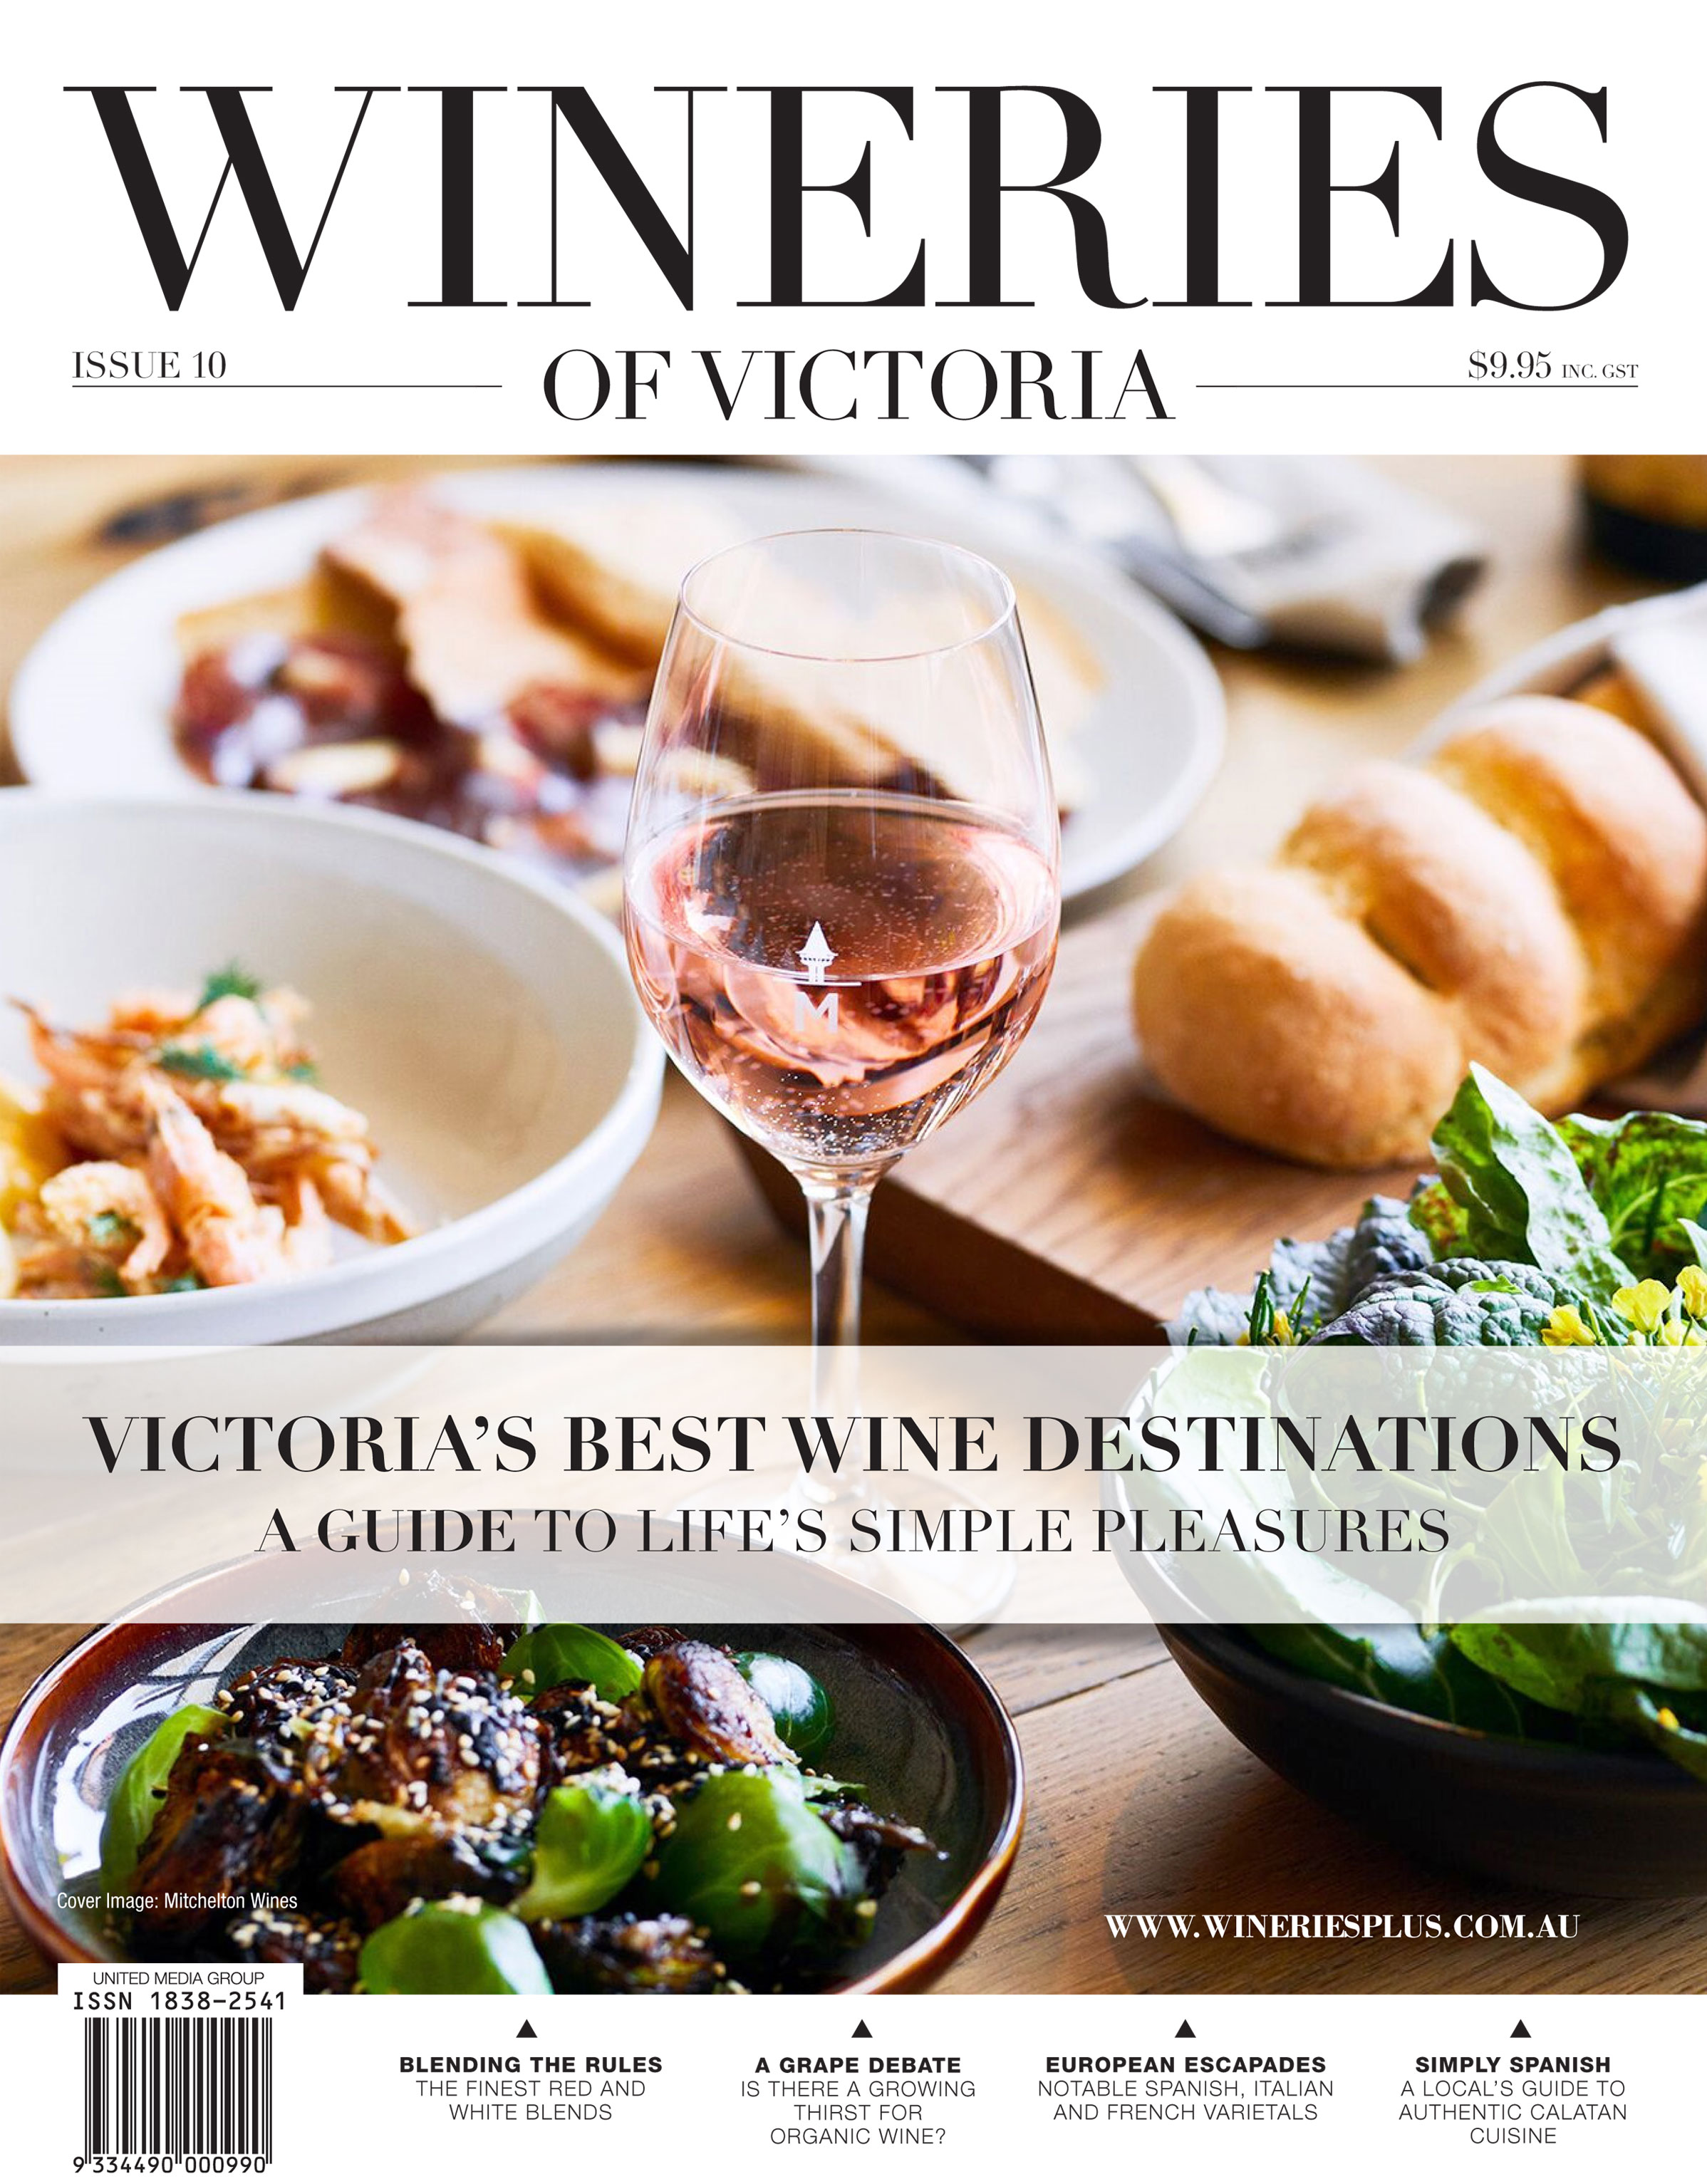 Wineries of Victoria - Issue 10